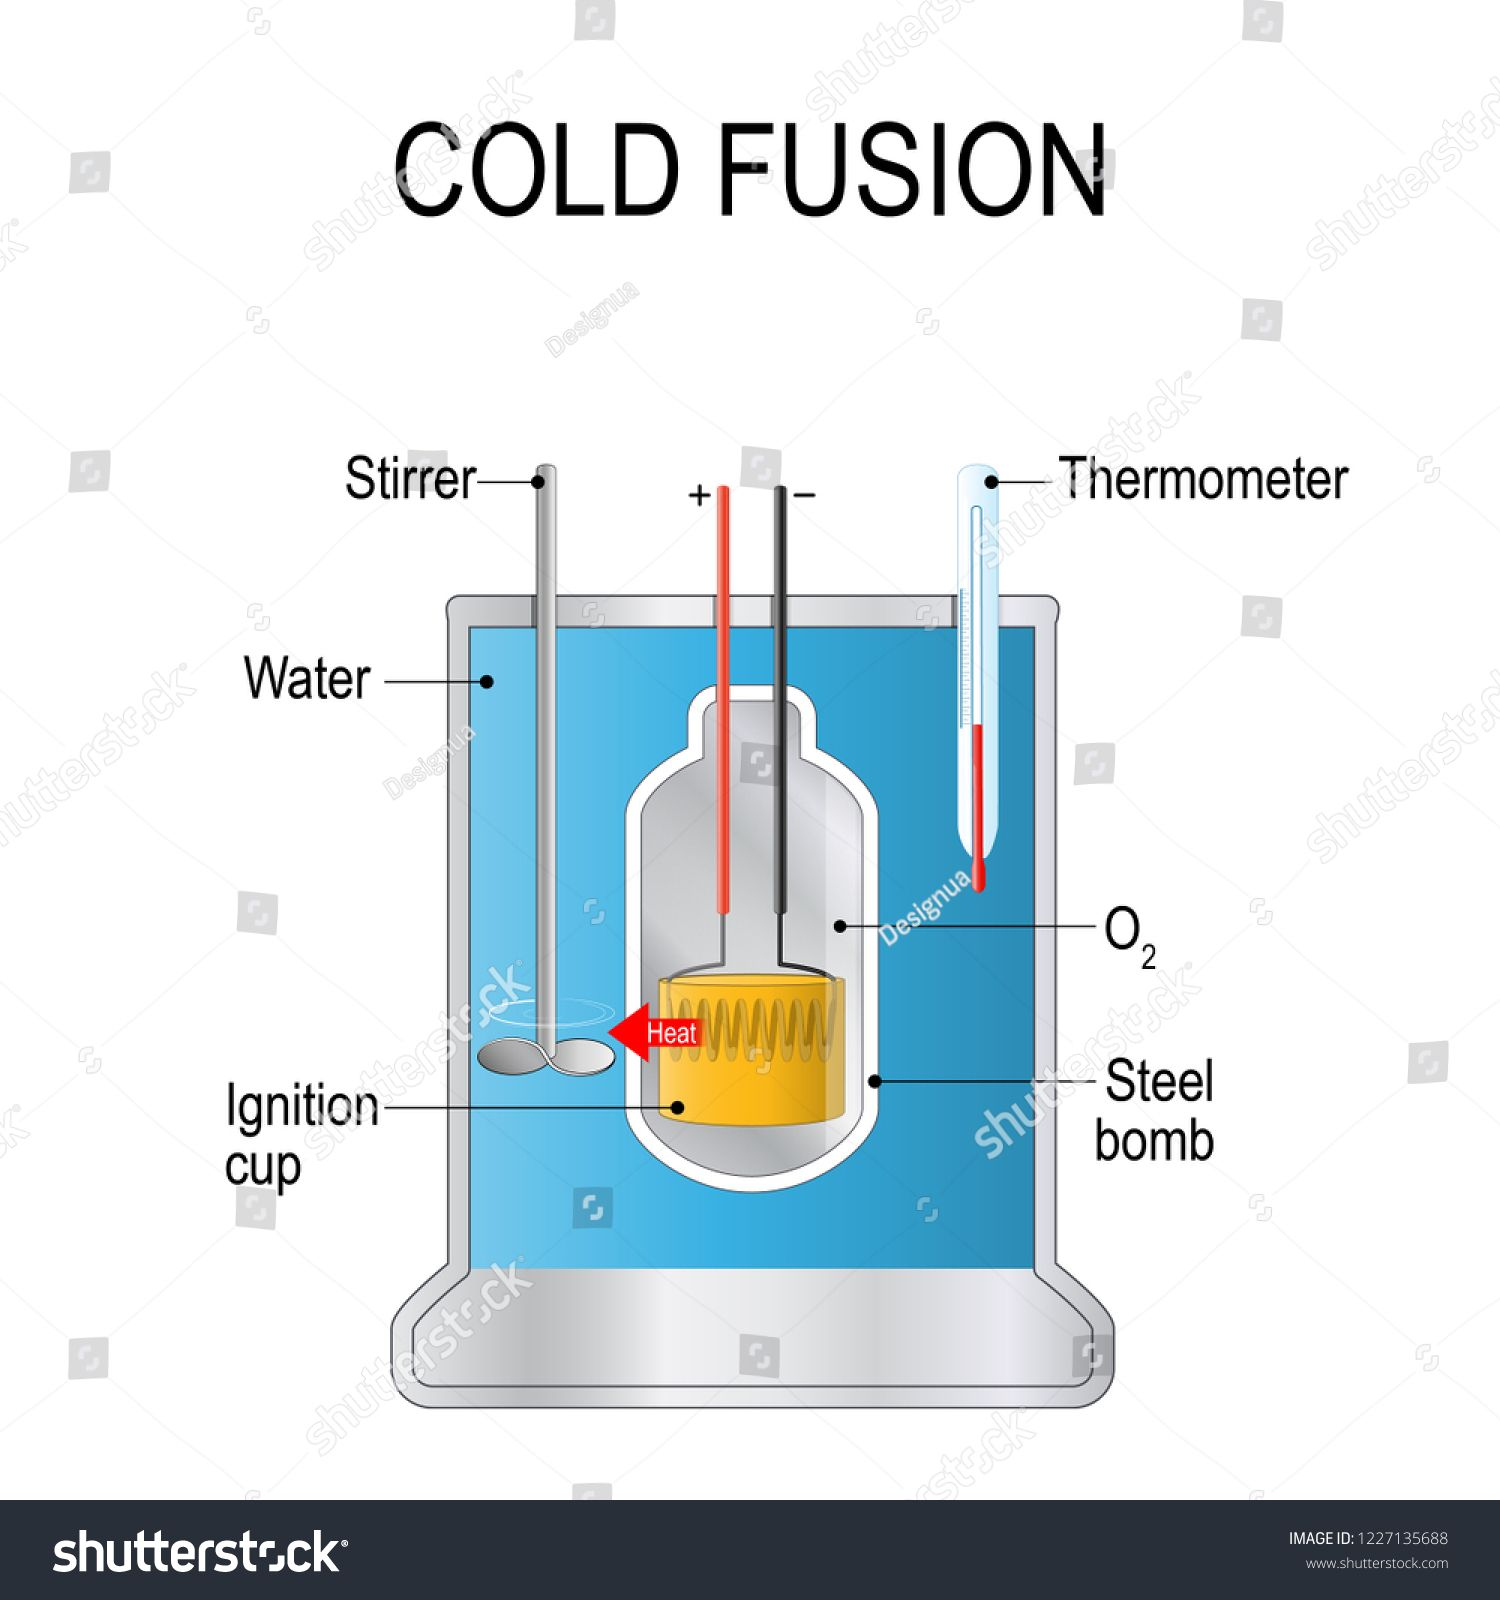 Cold fusion. hypothesized type of nuclear reaction